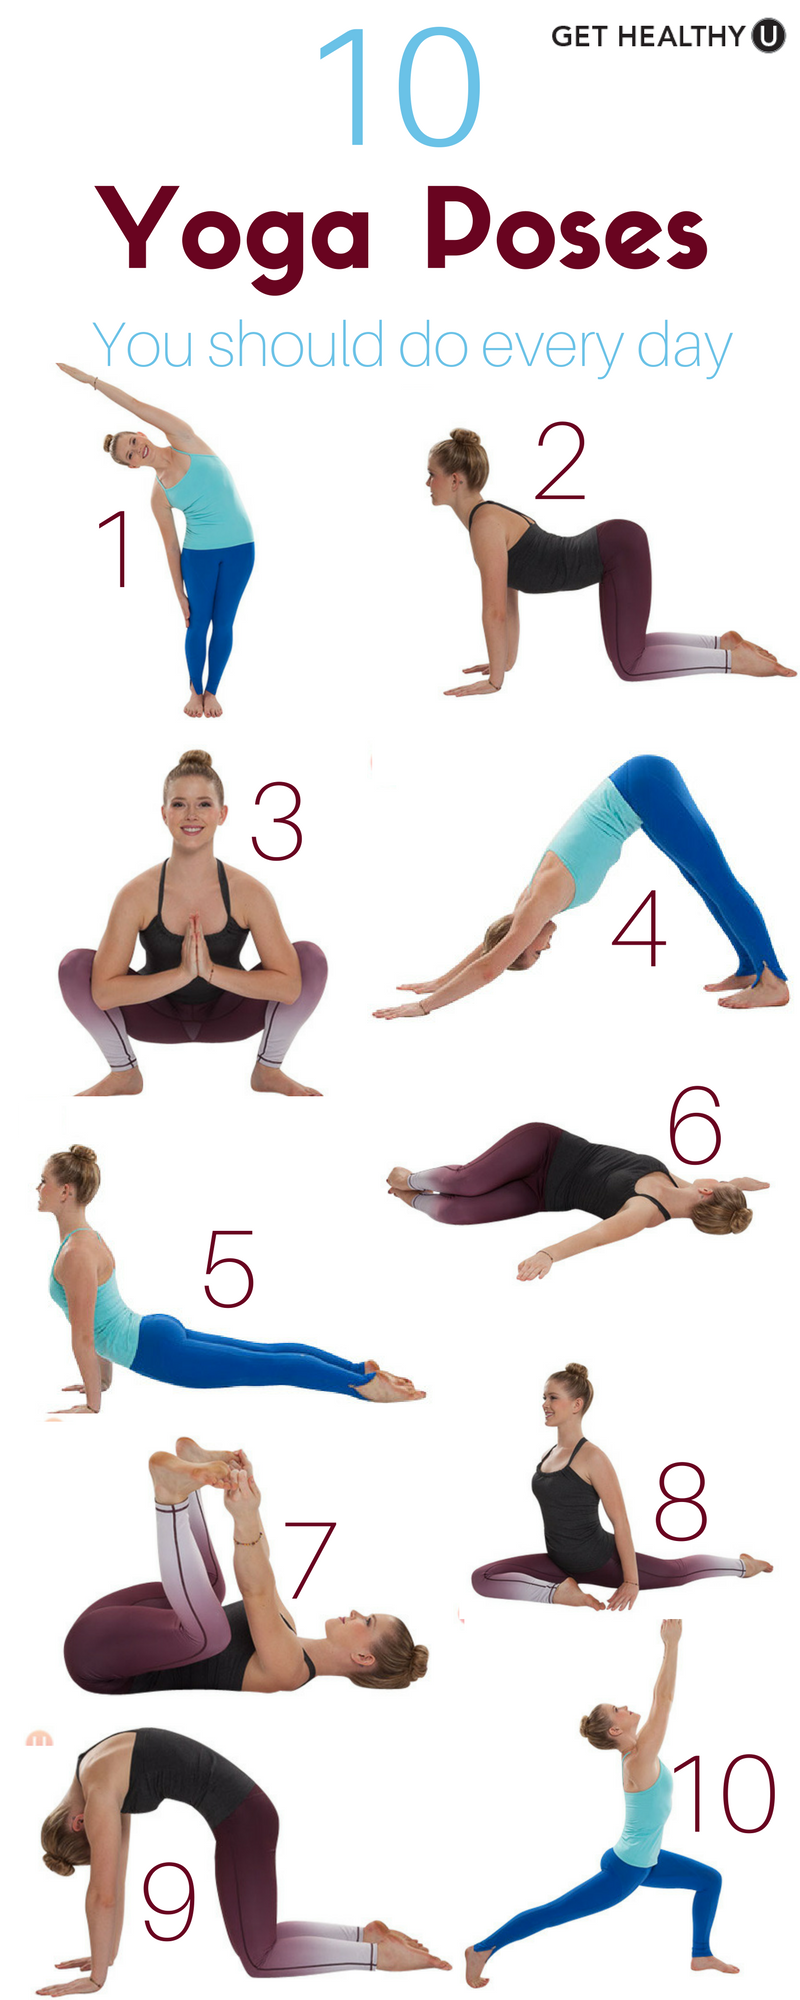 Check Out Our Simple Yoga Workout Weve Given You 10 Poses Should Do Every Day Can These Almost Anywhere At Anytime And WILL Feel